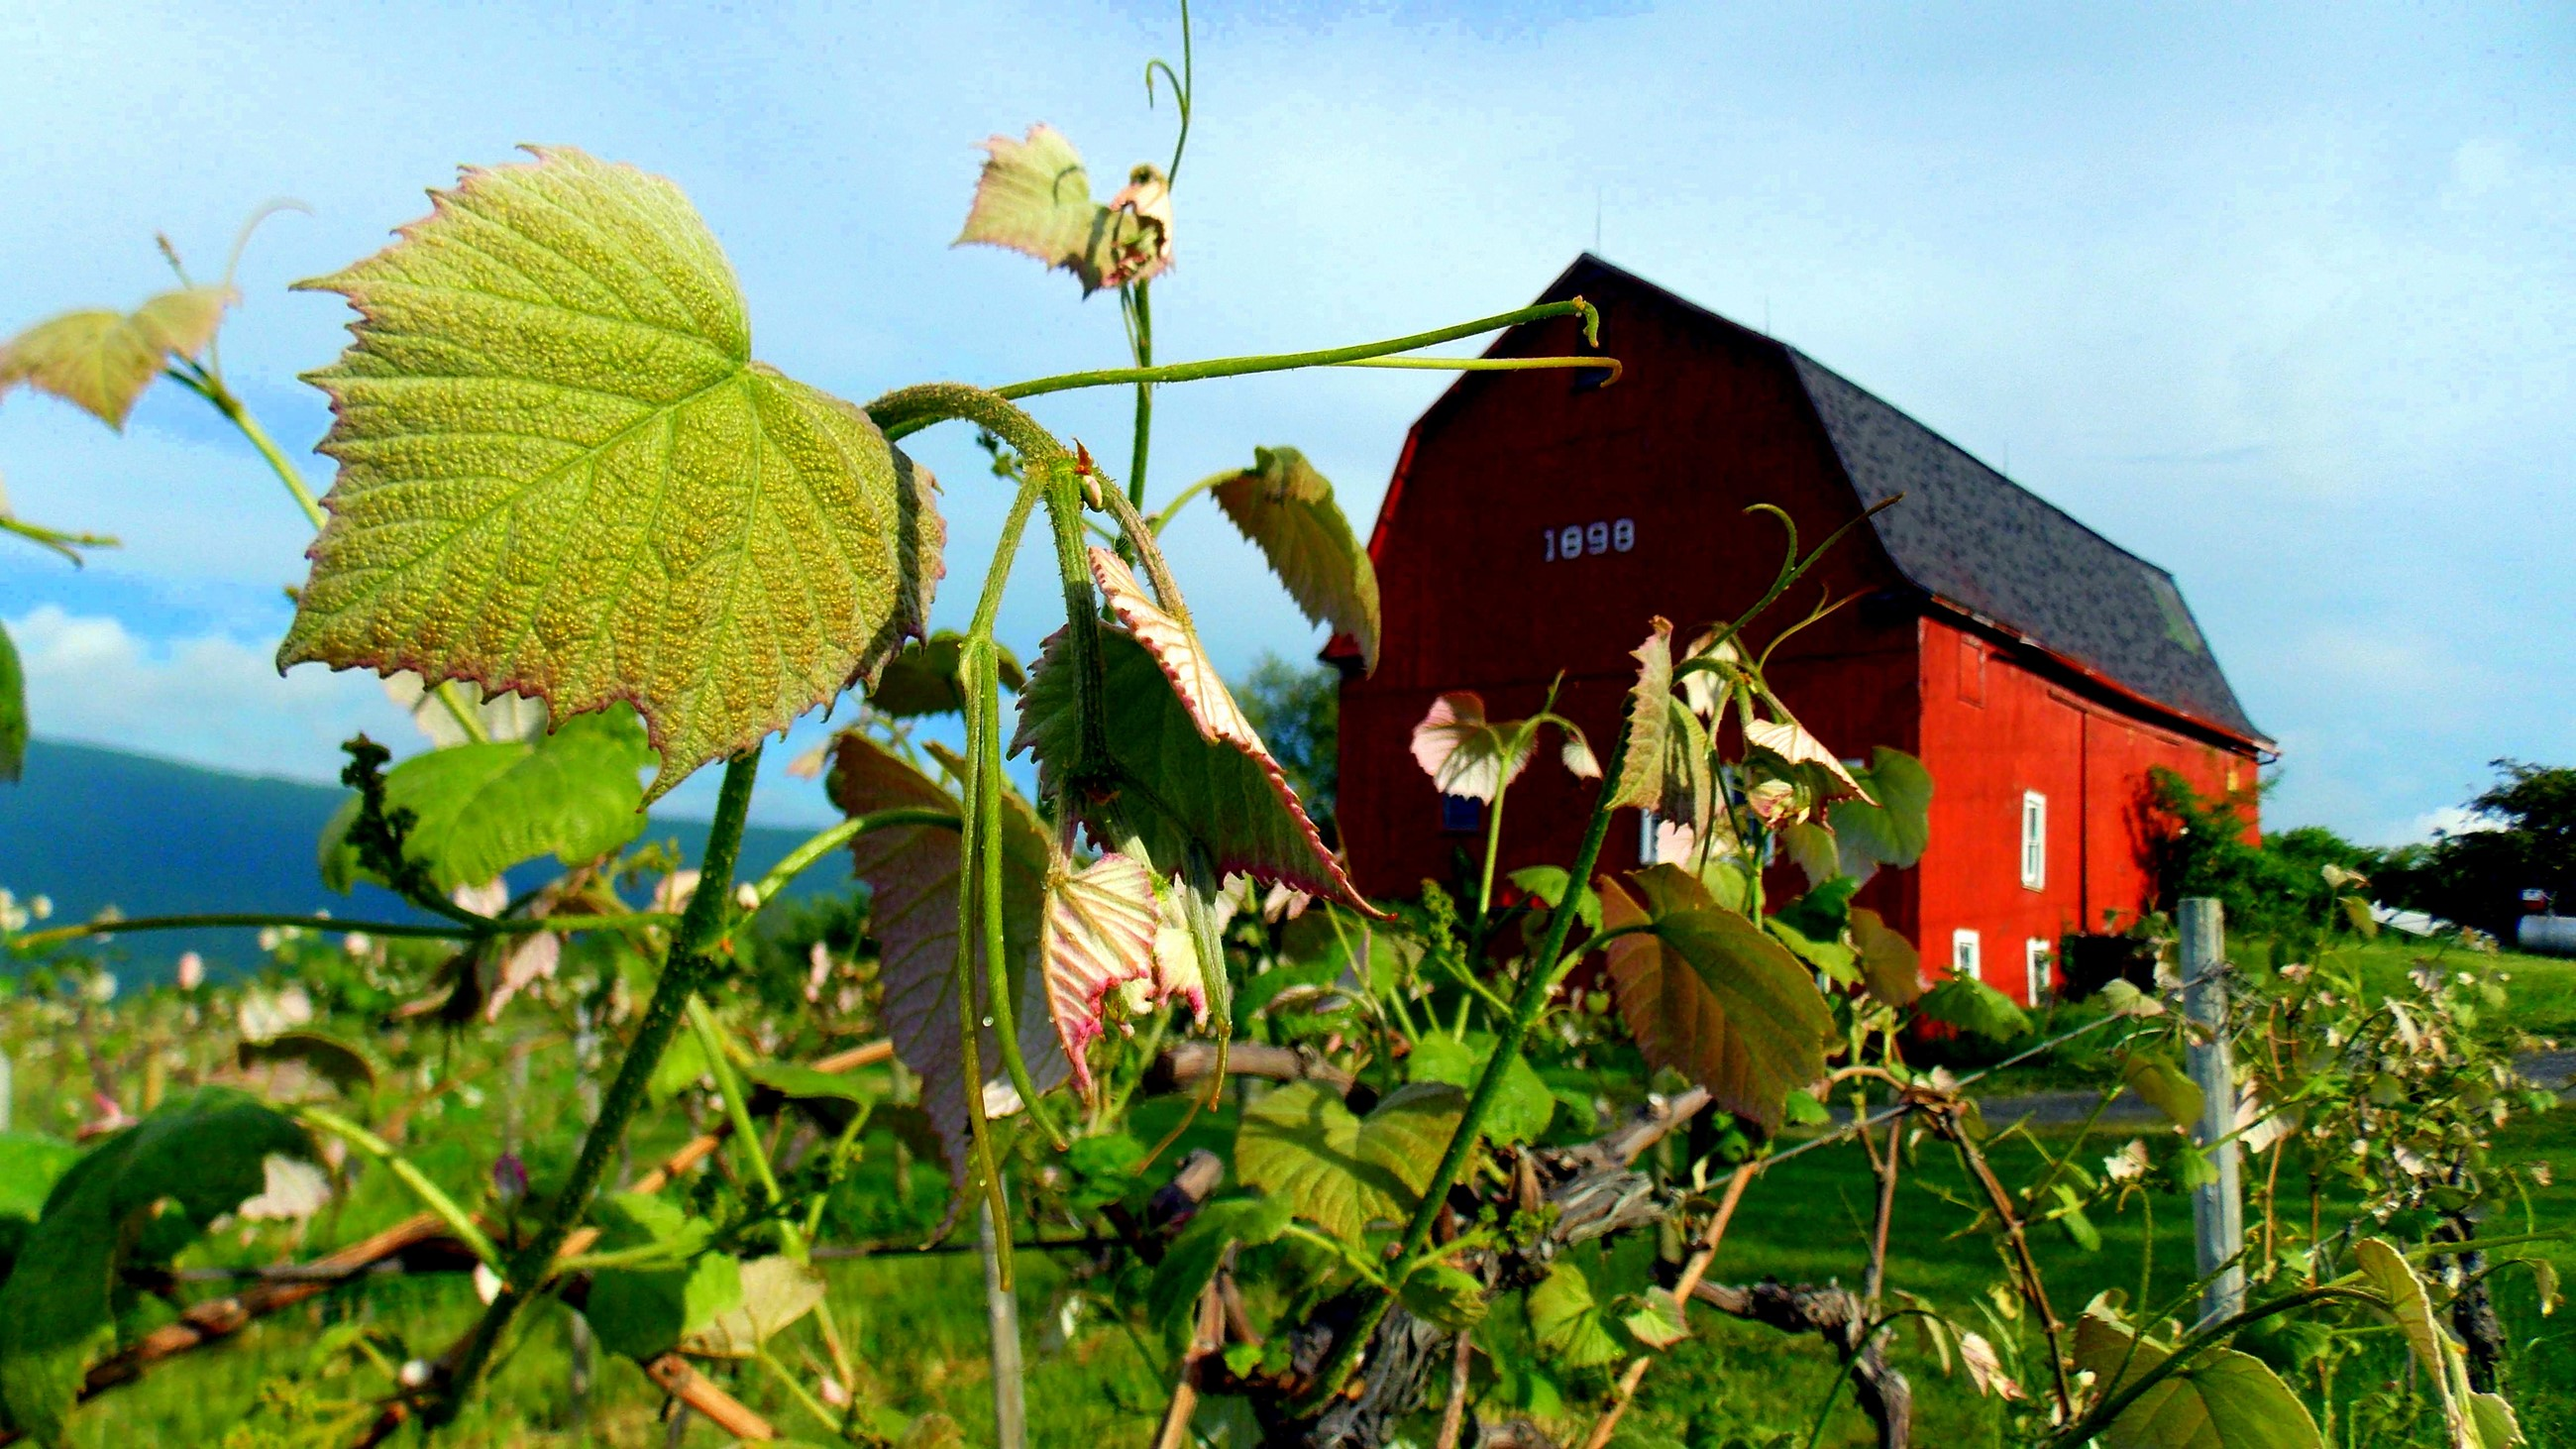 View of vines and rustic barn